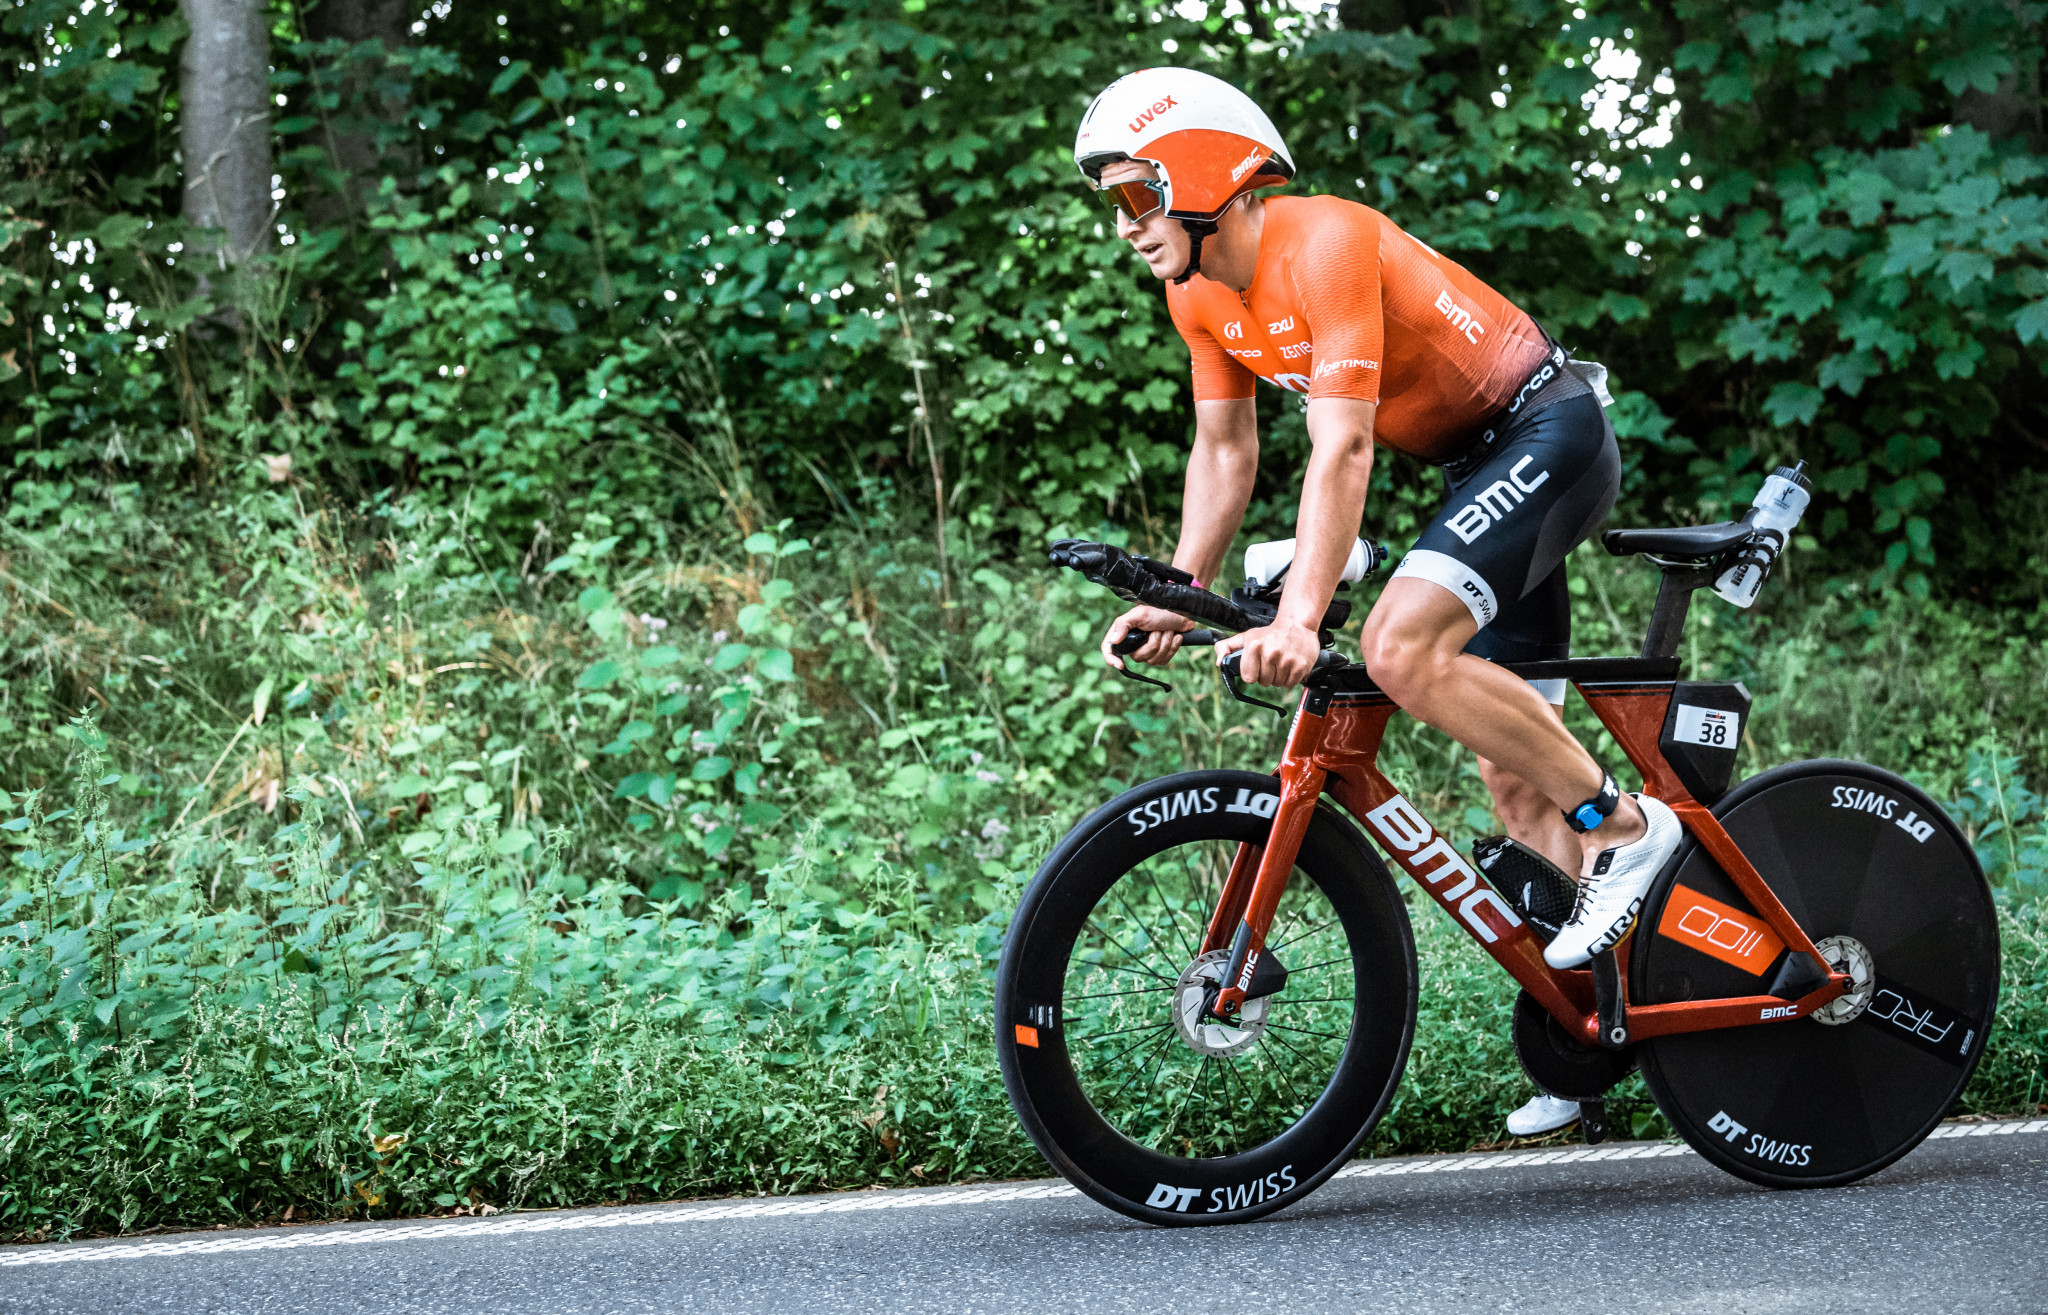 Hogenhaug sets course record in Almere to win World Triathlon Long Distance Championships men's race